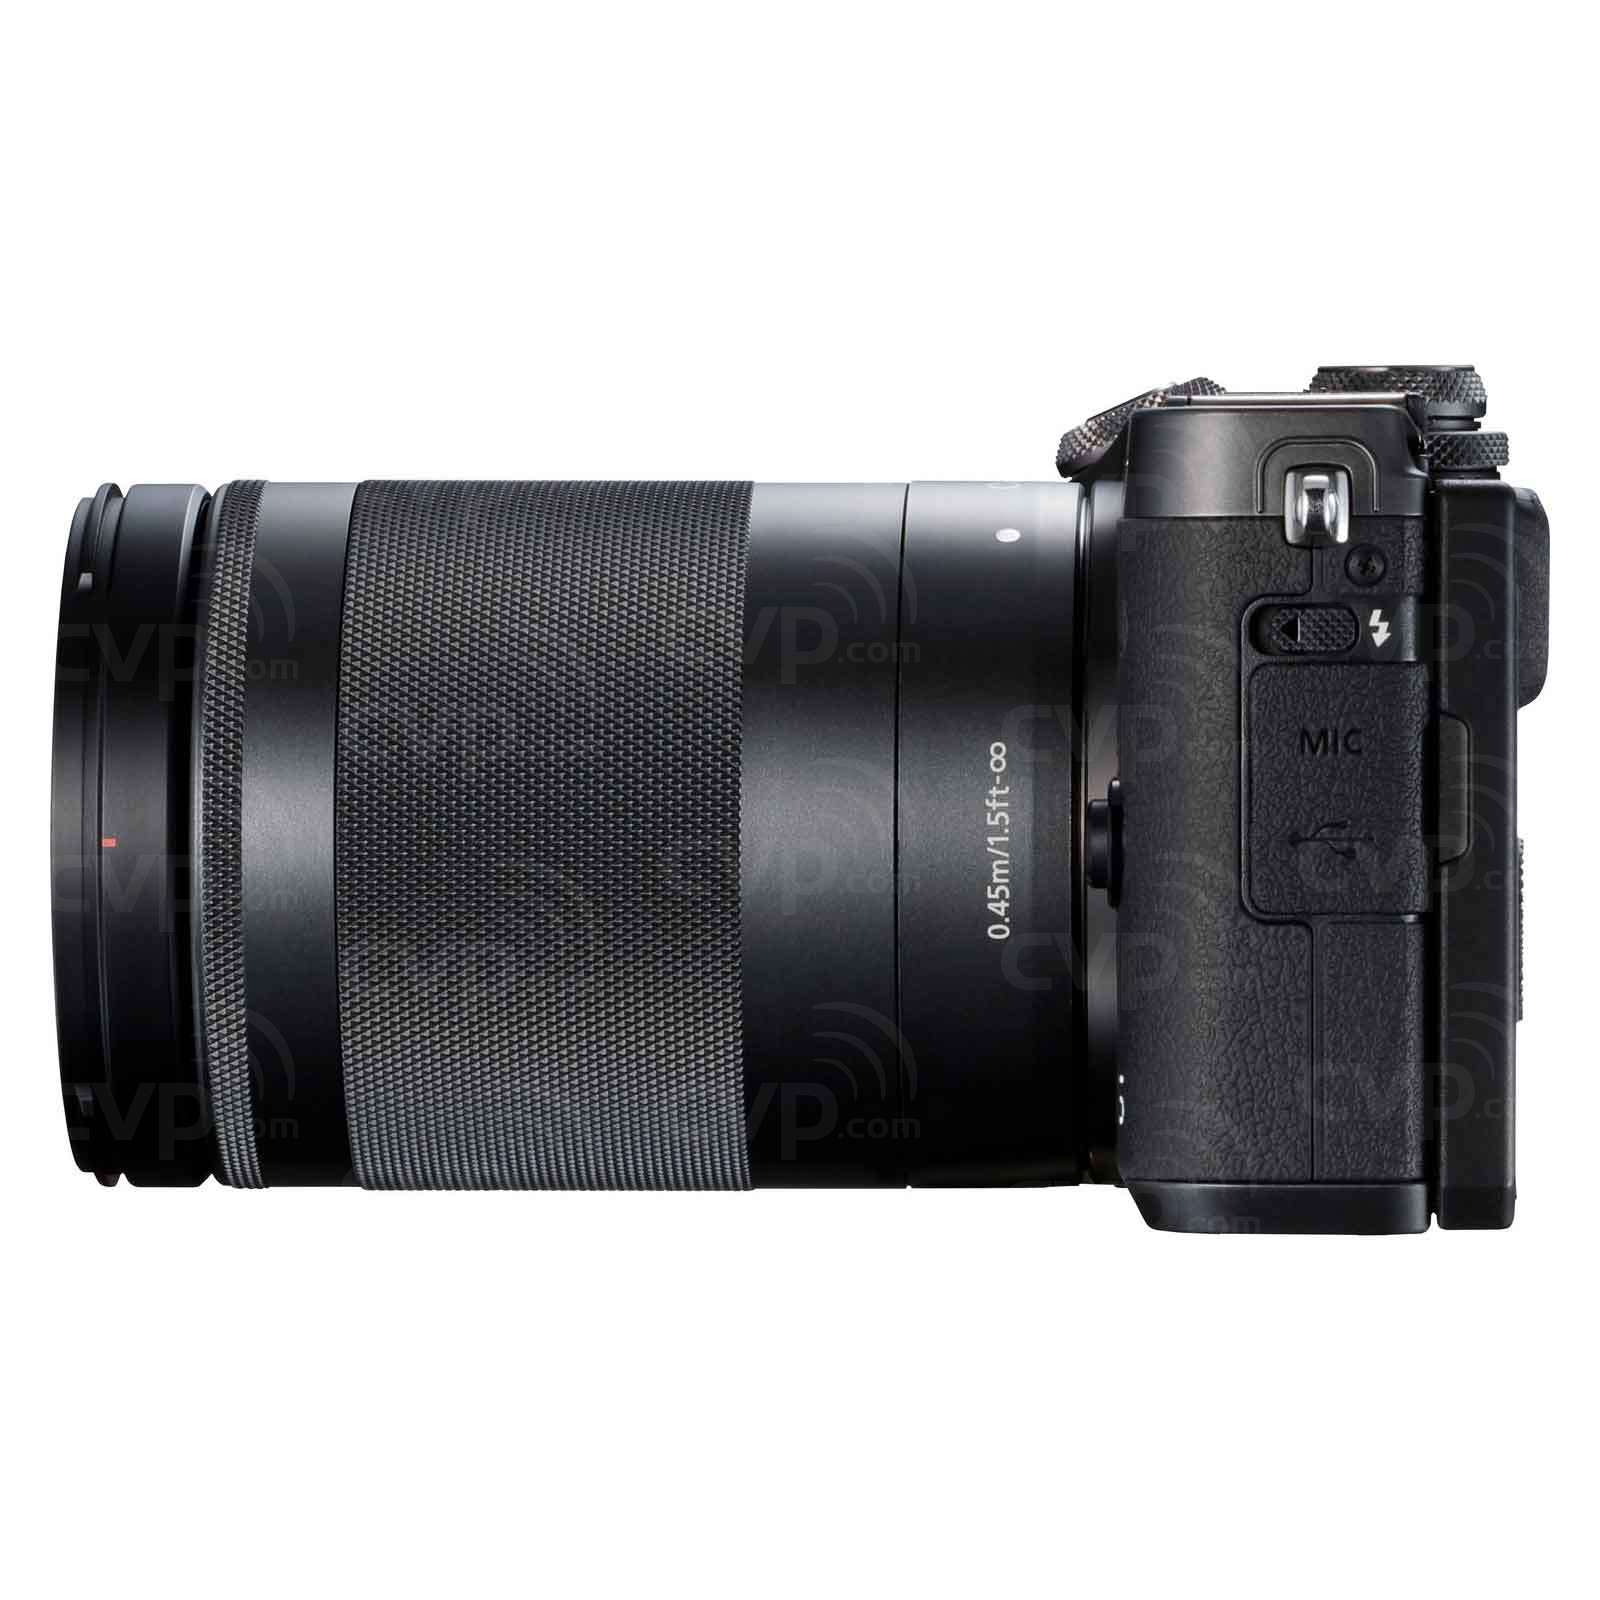 Canon M6 with 18-150mm Lens